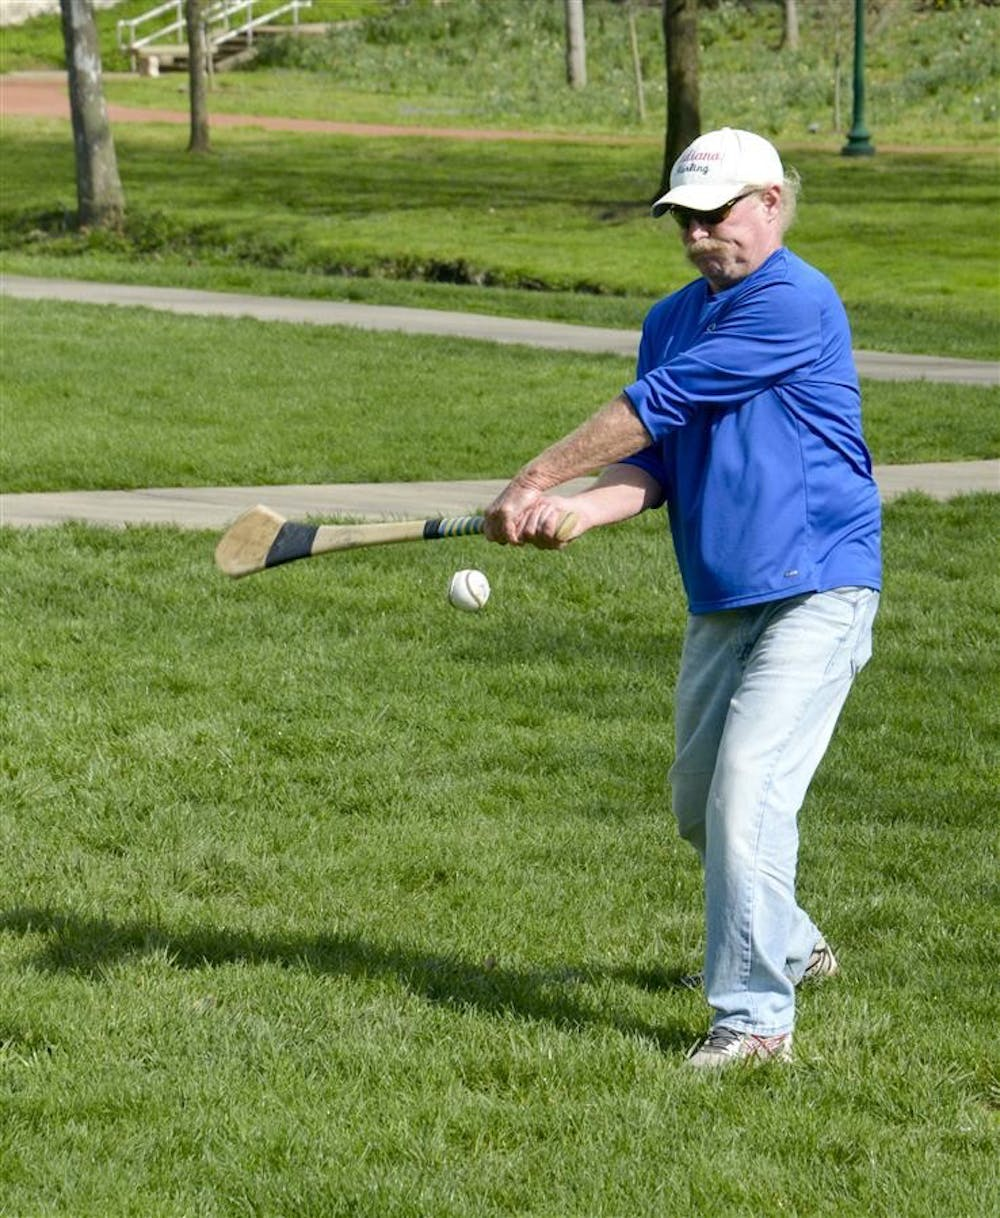 Coach Tom Fick practices hurling Wednesday afternoon in Dunn Meadow. Fick is the coach of the IU Hurling Club who competes around the region.